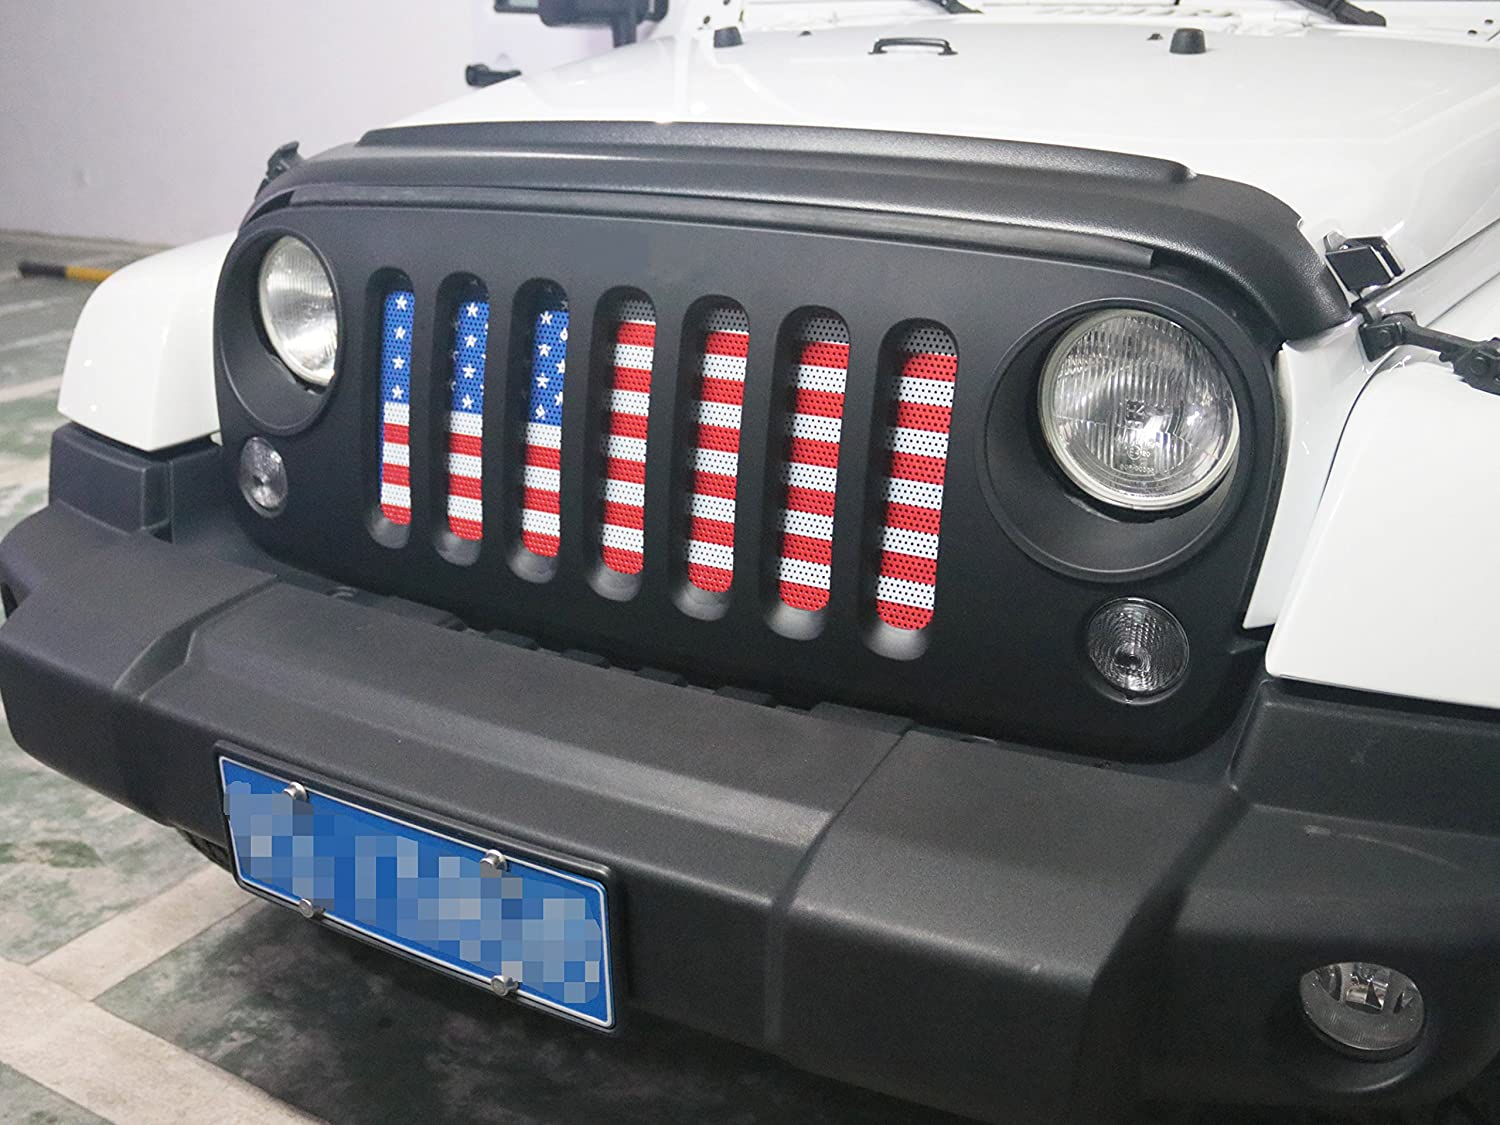 MOEBULB Front Grill Insert Steel American Flag Mesh Grille for 2007-2018 Jeep Wrangler JK /& Unlimited 2//4 Door White and Black, Without Key Hole